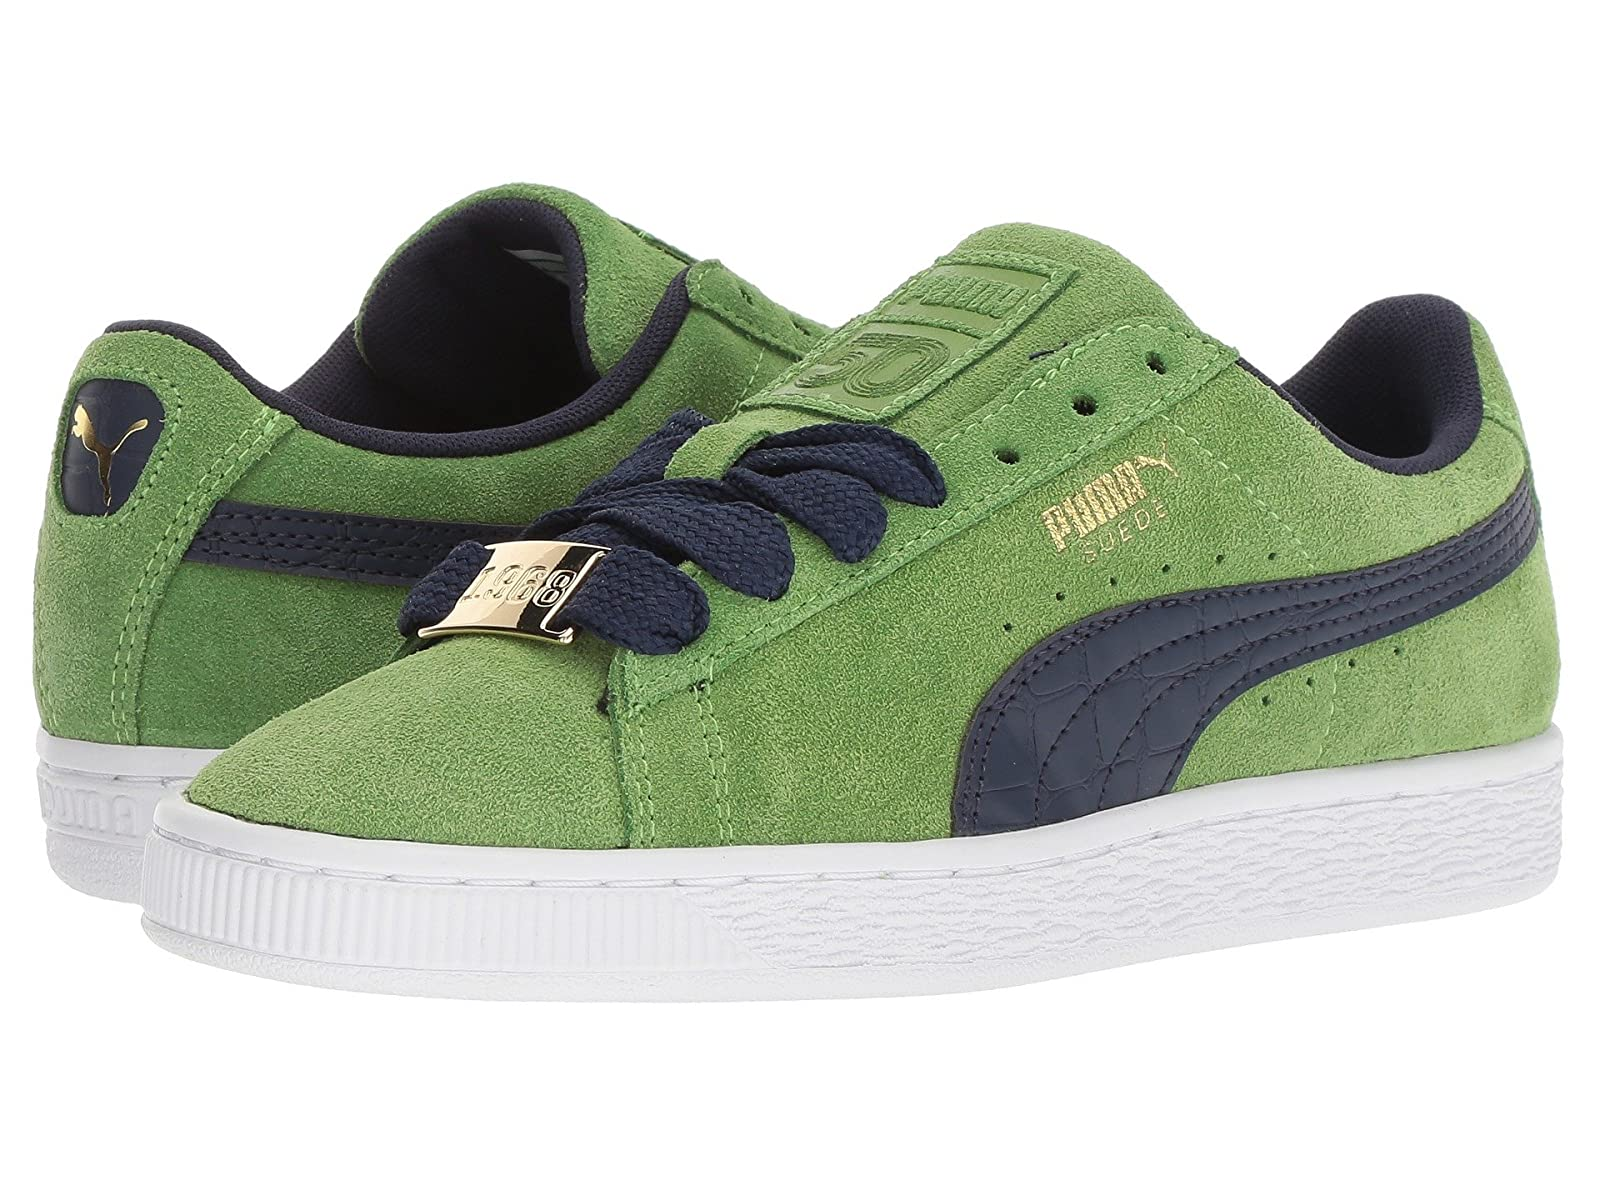 Puma Kids Suede Classic BBOY Fabulous (Big Kid)Cheap and distinctive eye-catching shoes